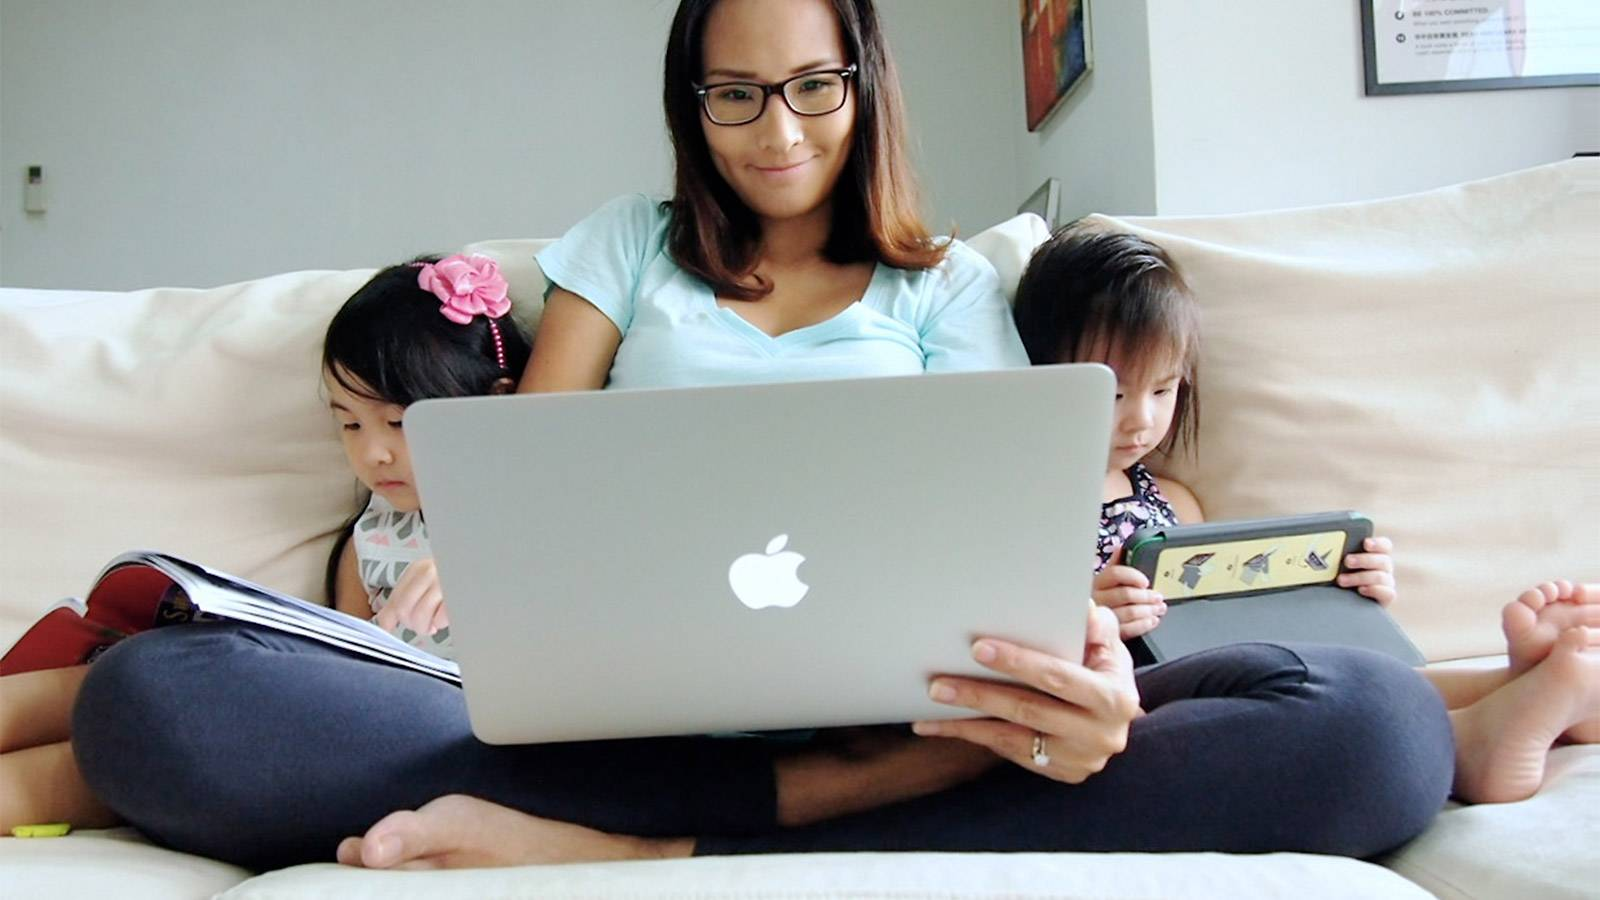 MUM SAYS 5 Tips For Work-from-home Mums